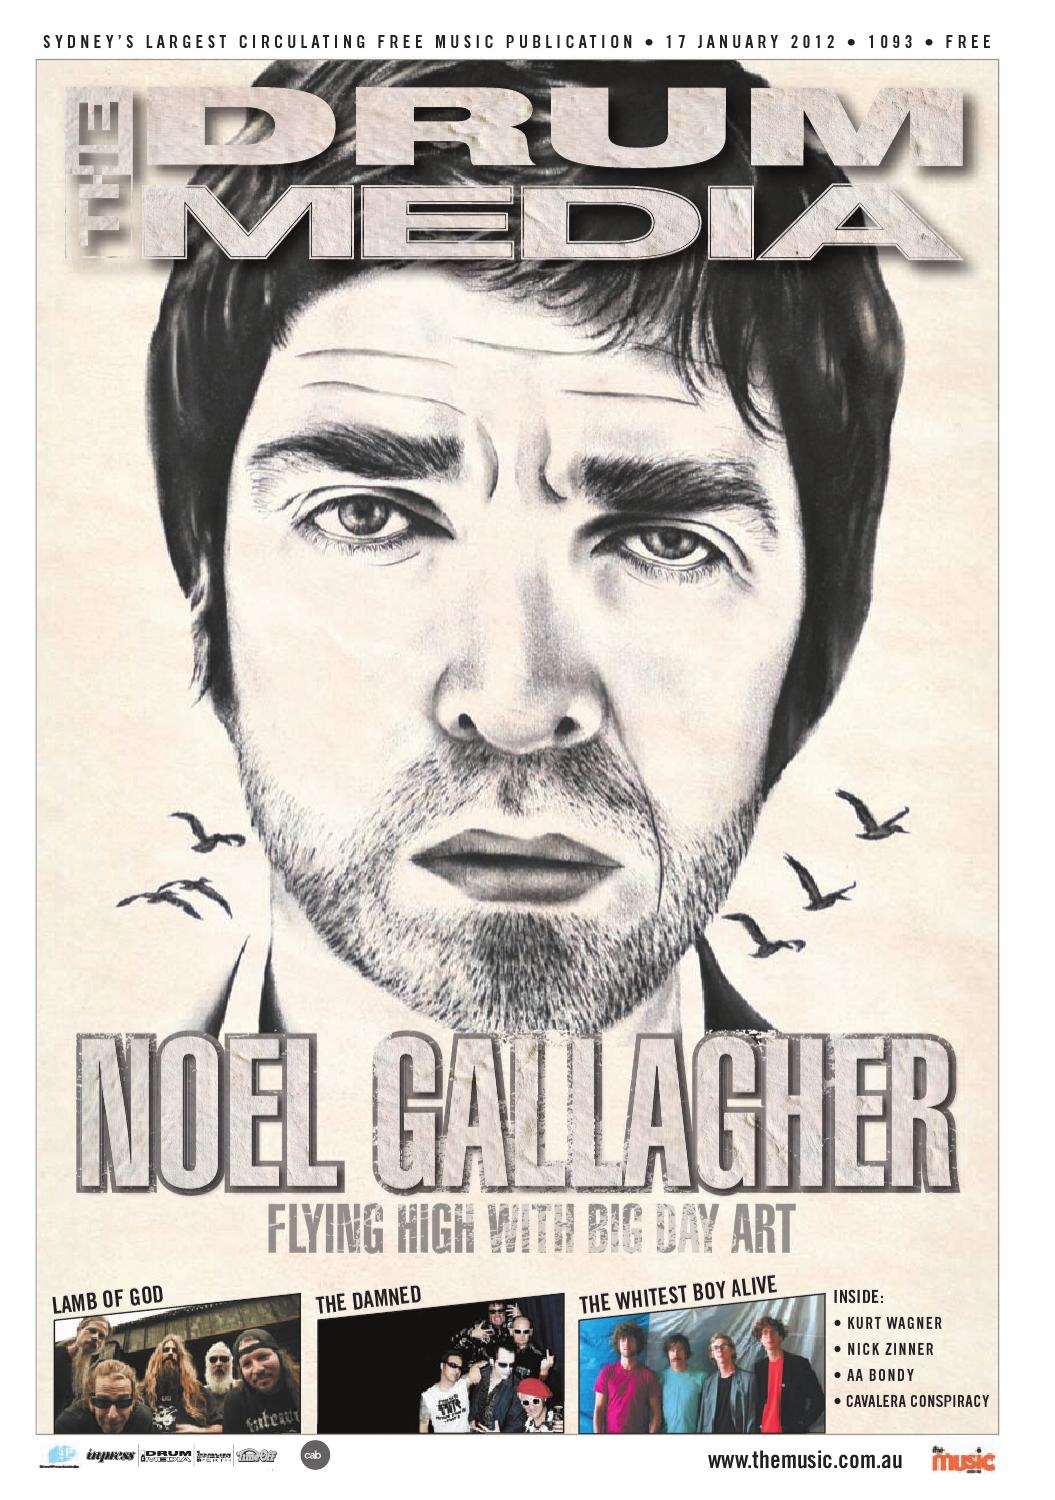 FANTASTIC NOEL GALLAGHER #8 CANVAS QUALITY OASIS CANVAS PICTURE A1 A3 FREE P/&P